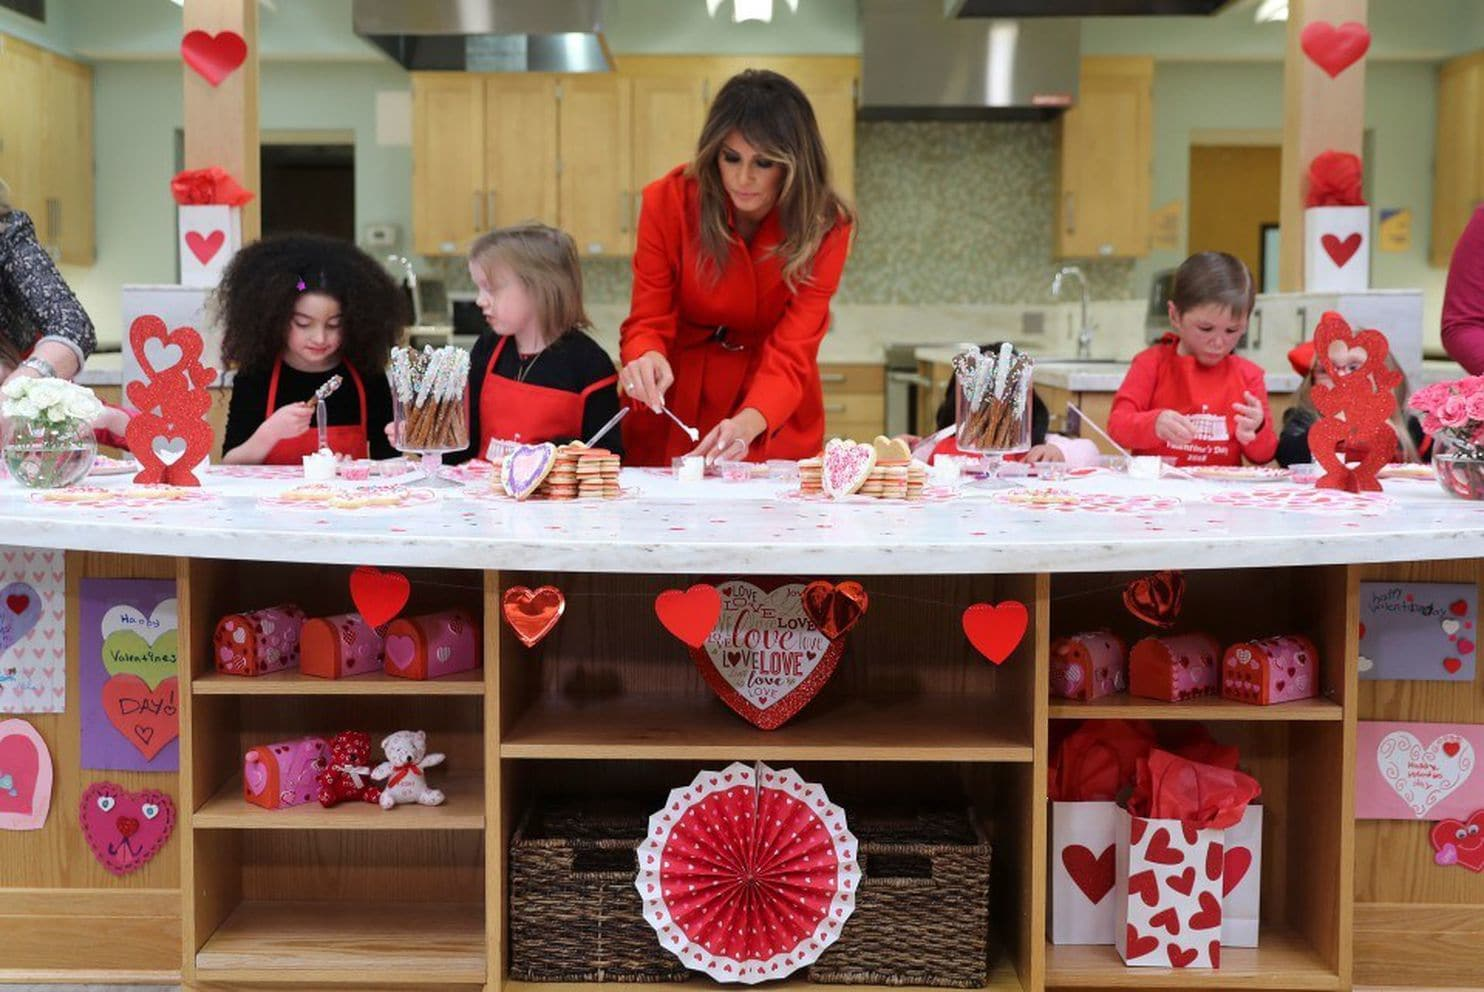 First lady Melania Trump helps decorate cookies during her visit to the Children's Inn on Valentine's Day